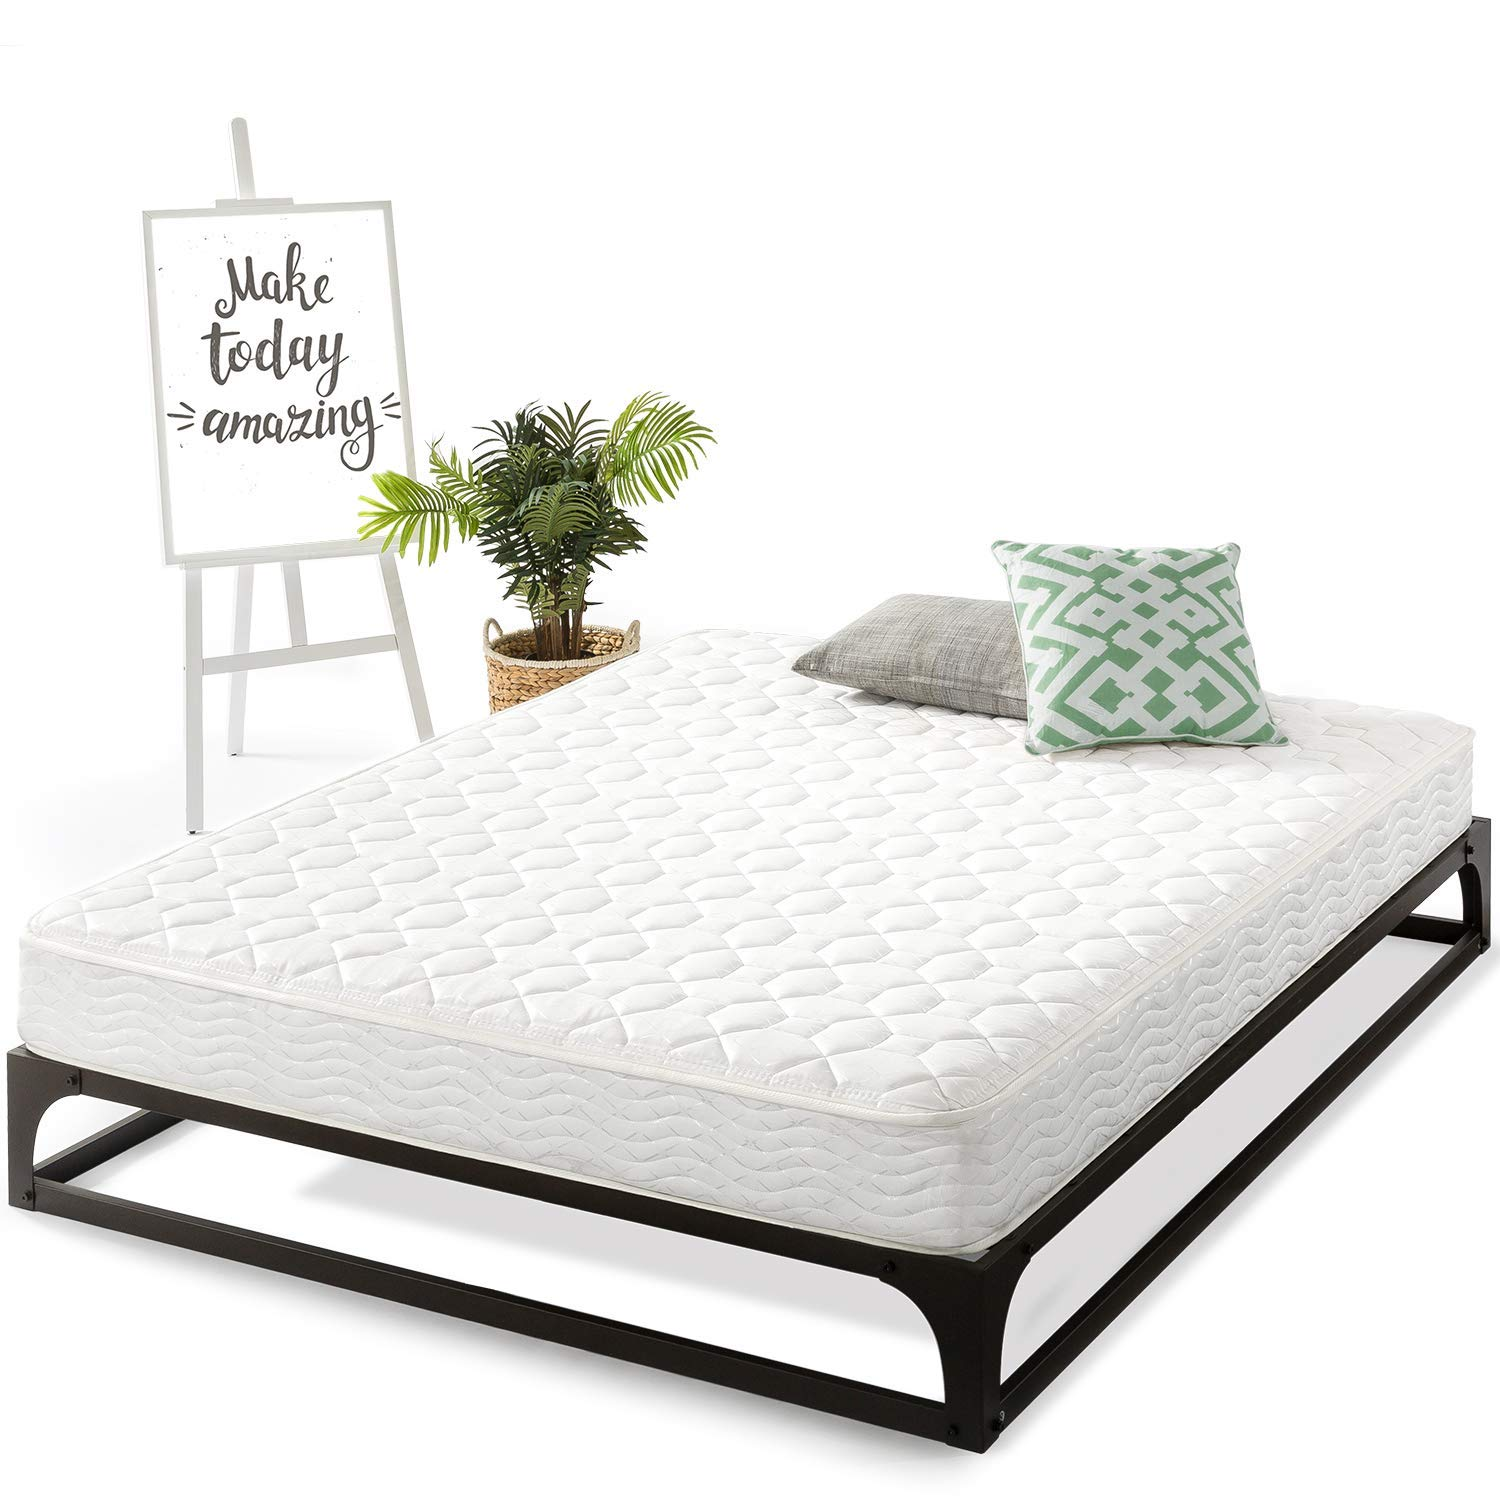 Best Price Mattress Twin Mattress - 8 Inch Hybrid Spring Mattresses Infused with Green Tea, Twin Size